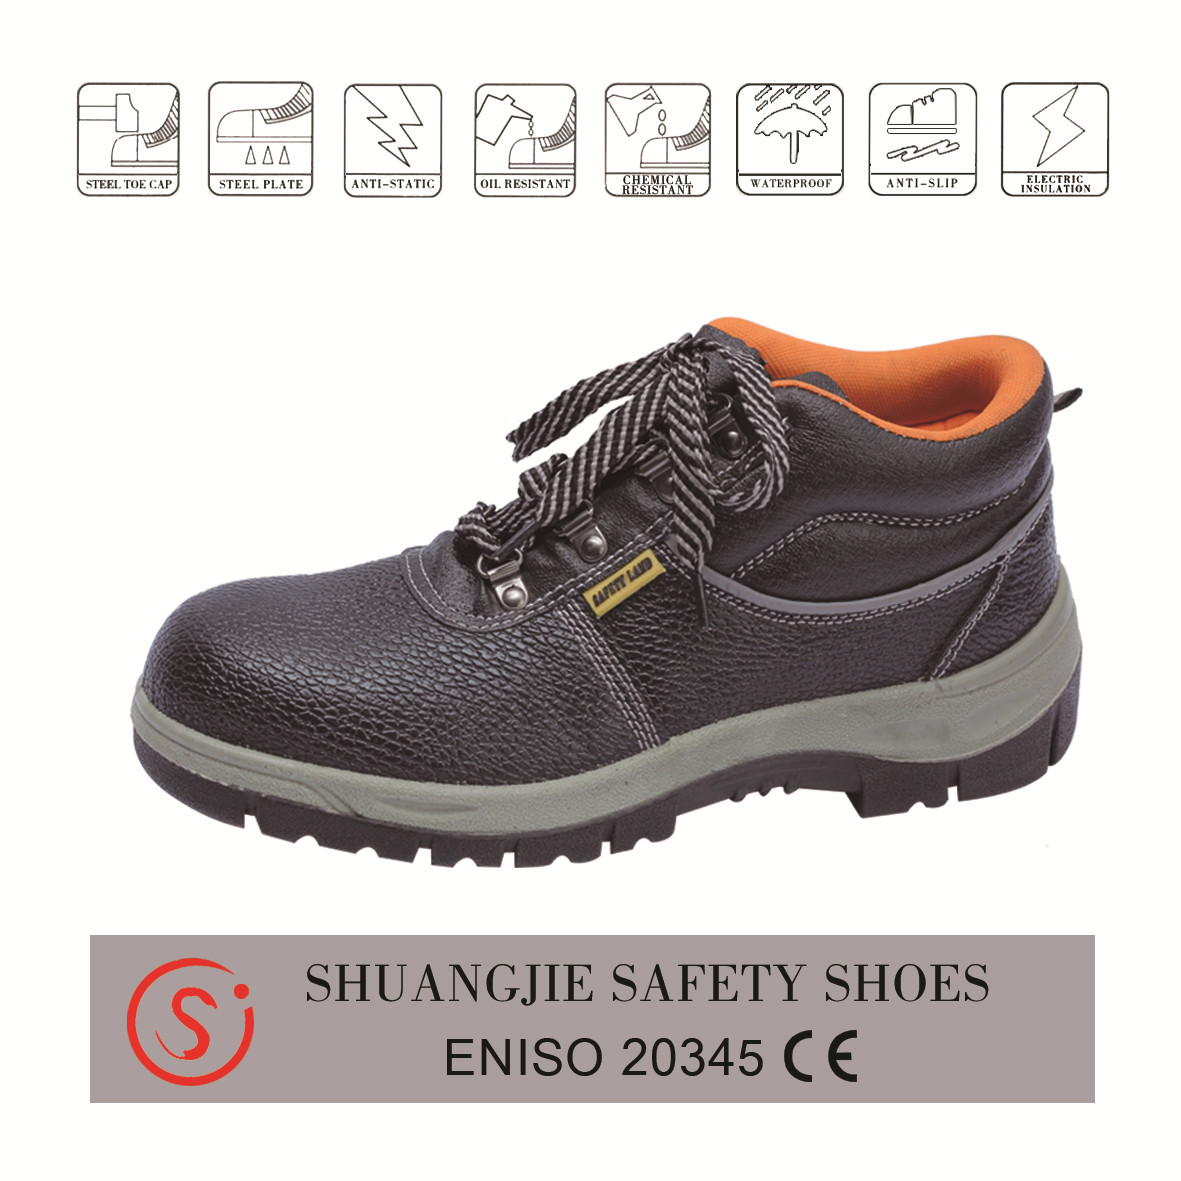 safety shoes work boots 9005 embossed leather pu outsole